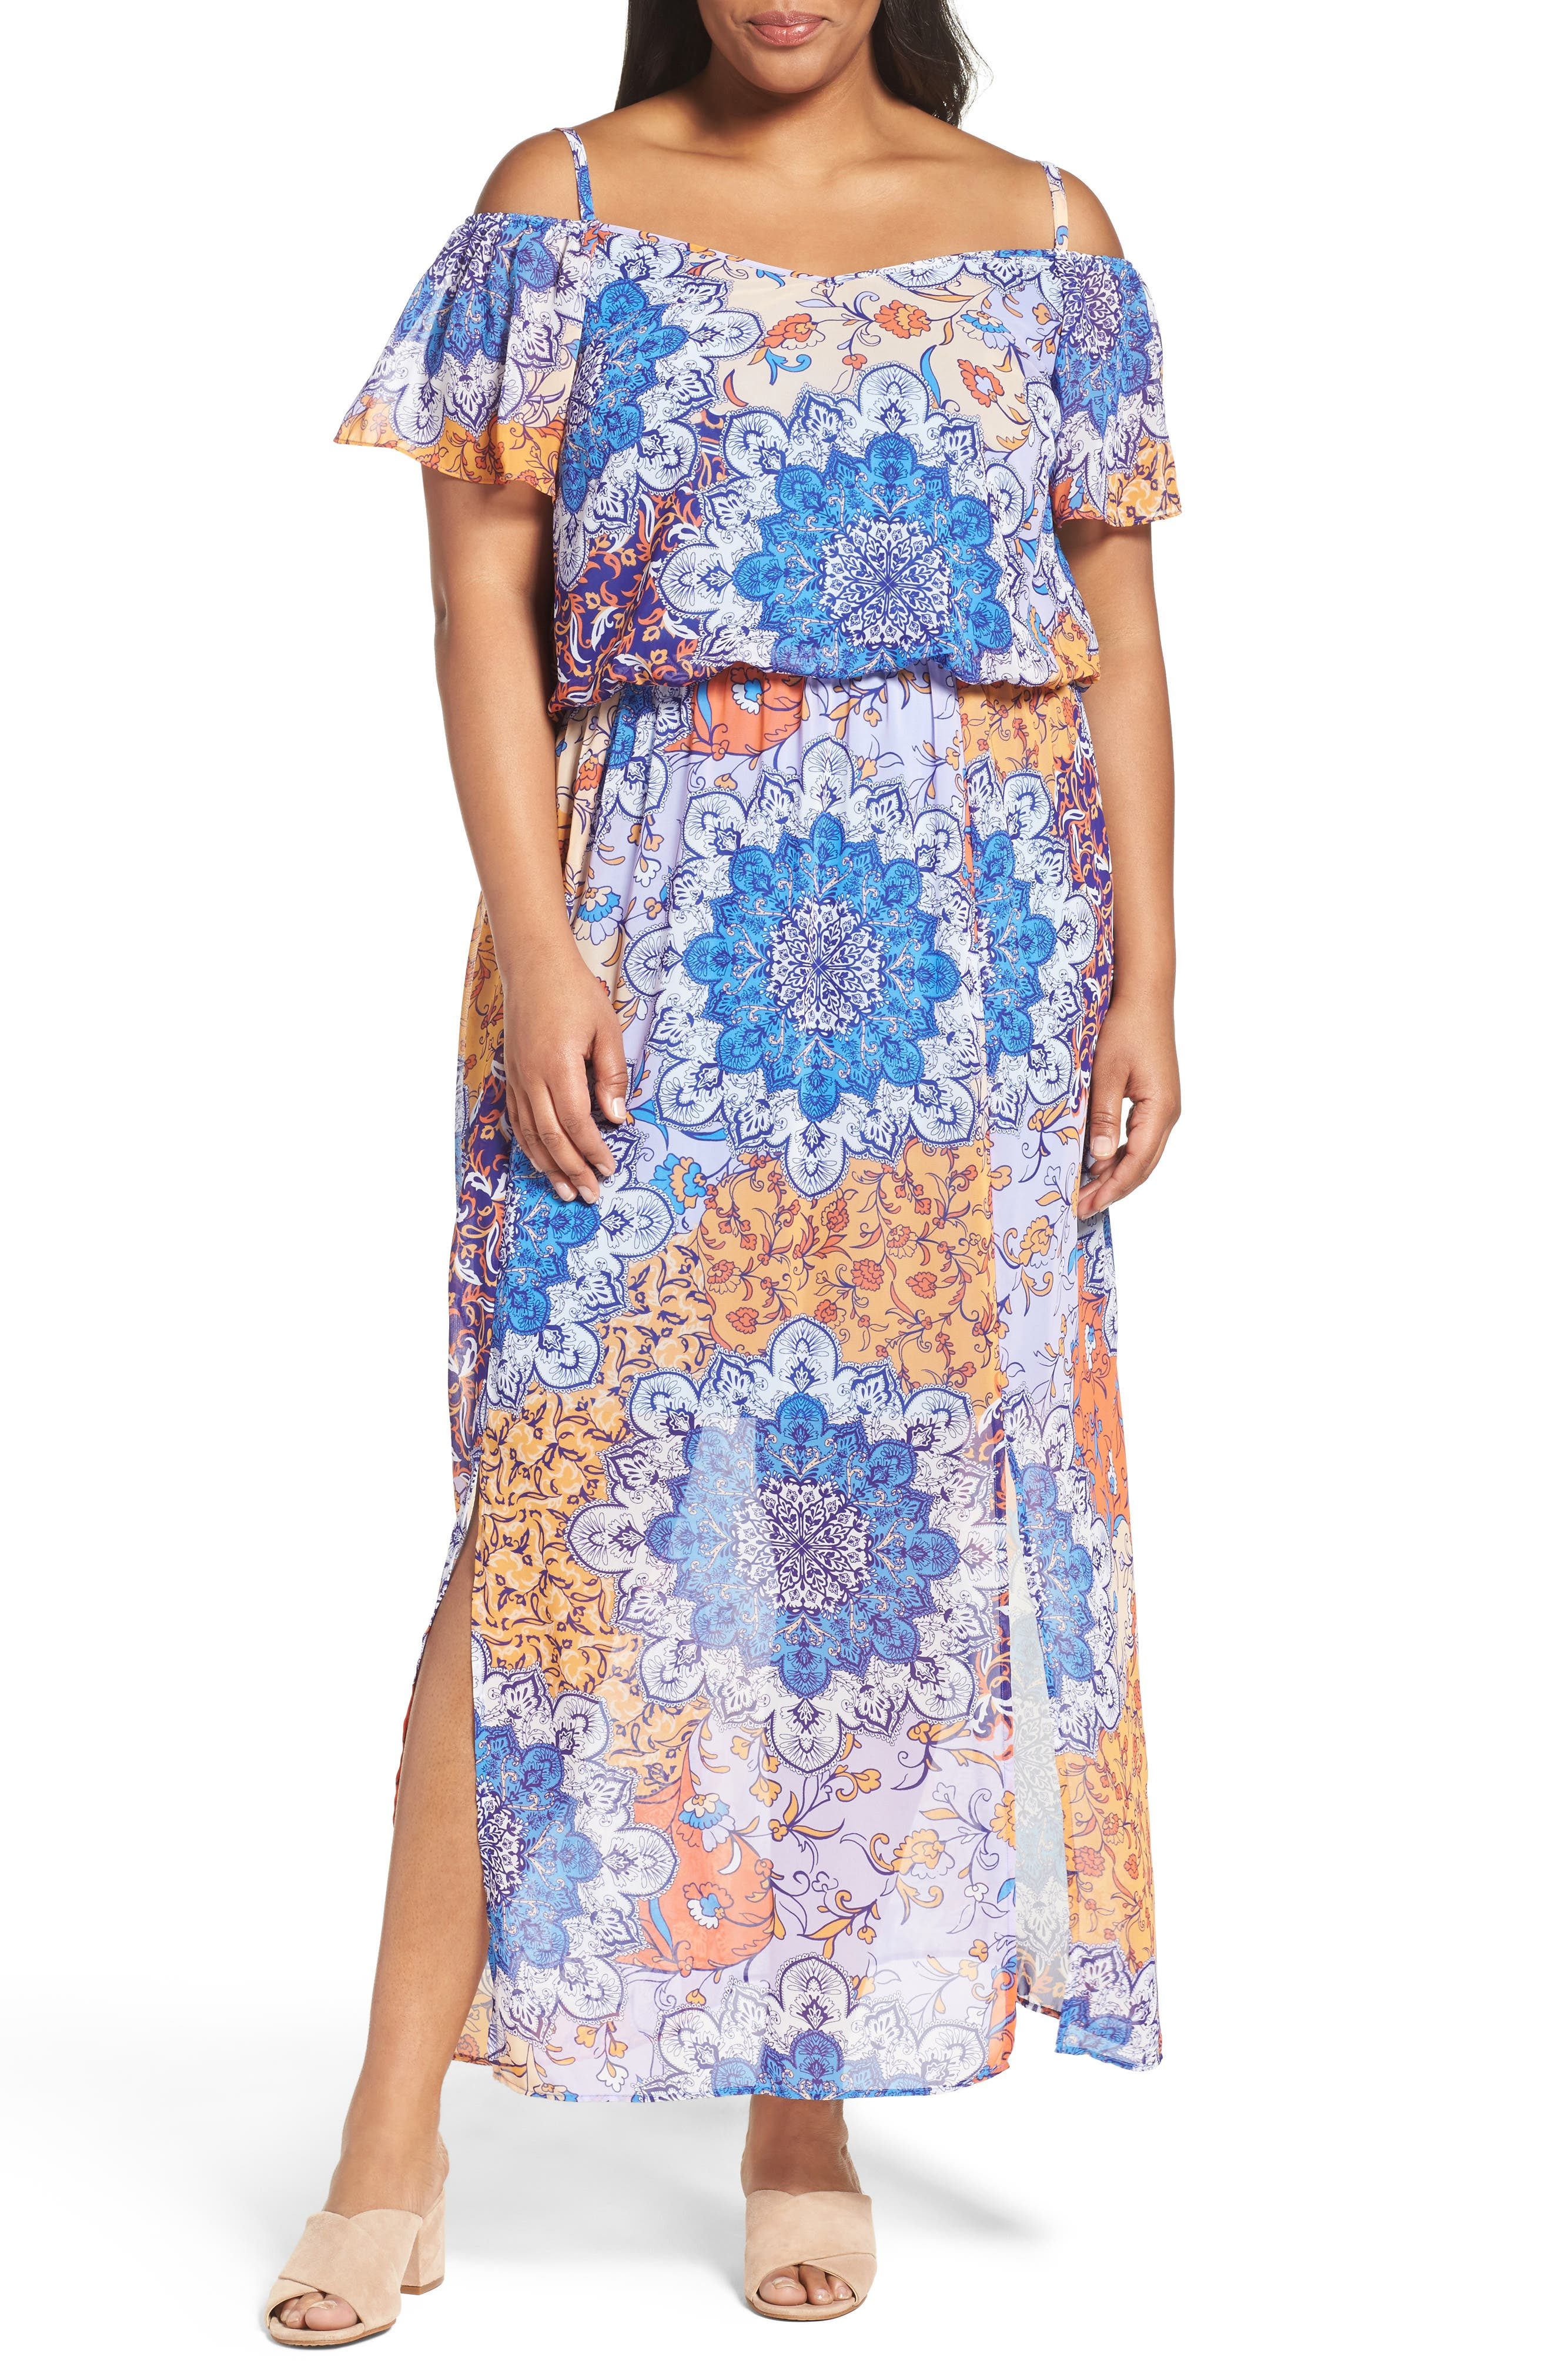 Alternate Image 1 Selected - London Times Print Cold Shoulder Maxi Dress (Plus Size)